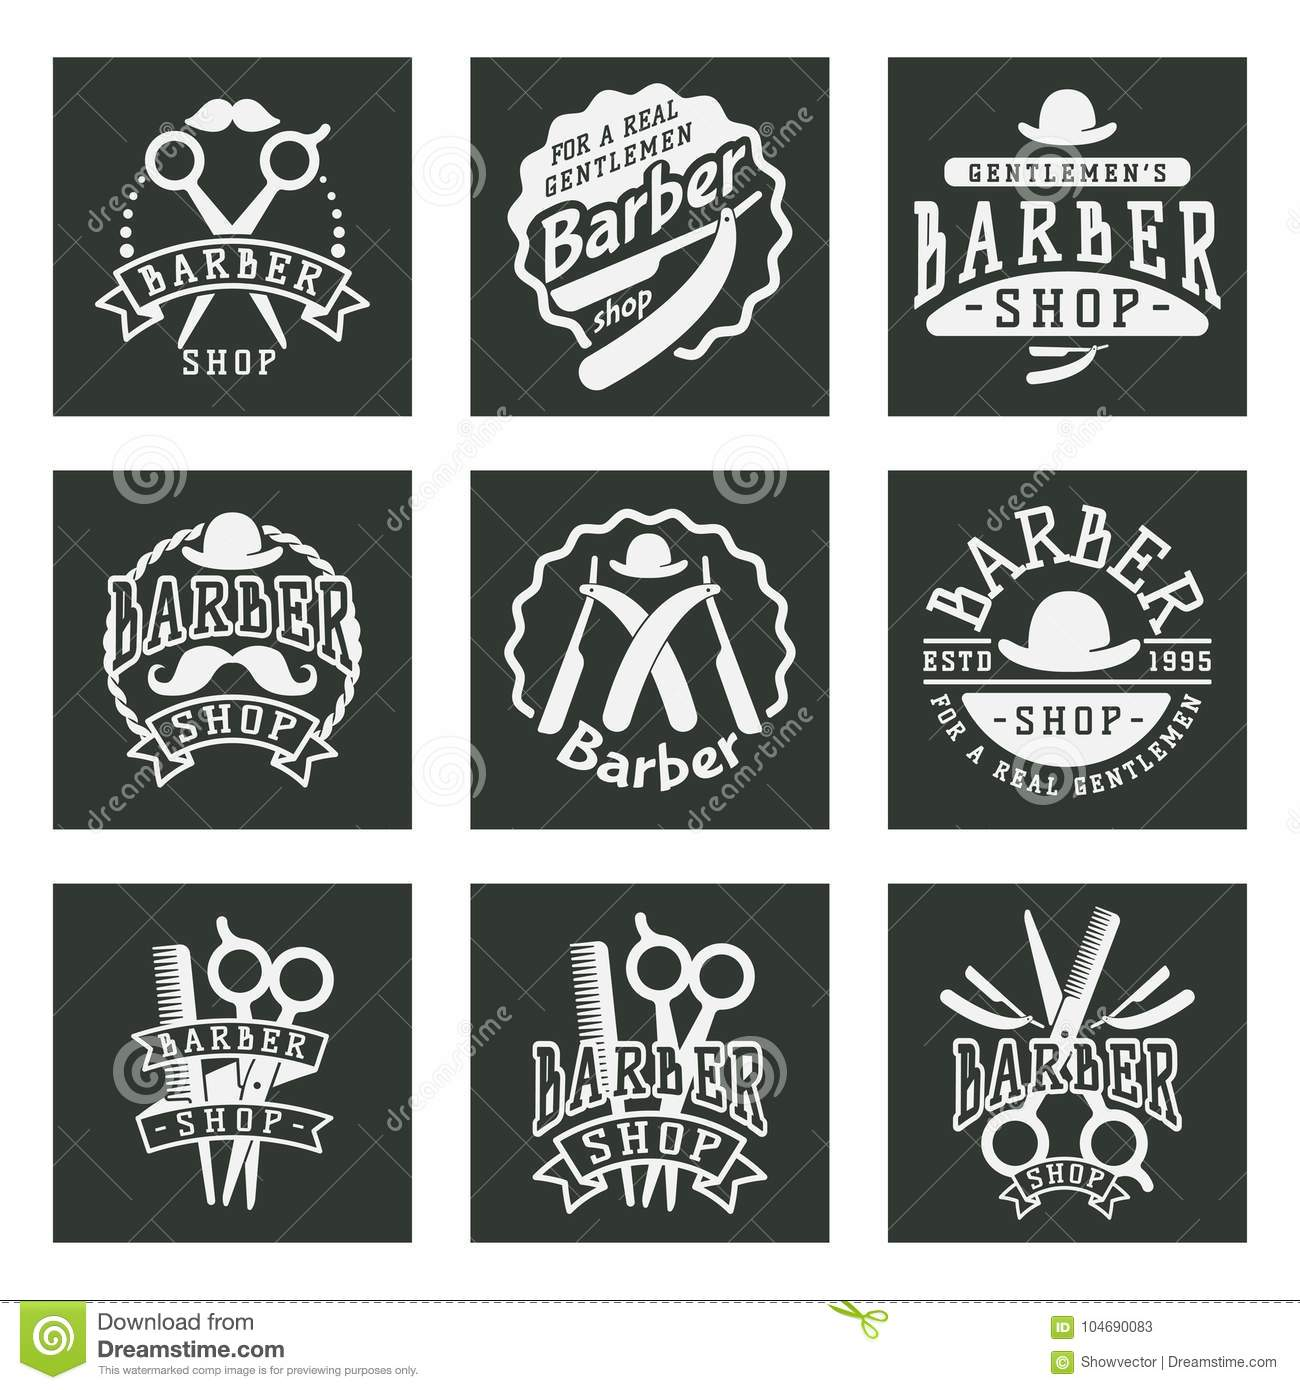 Download Vintage Barber Logo Retro Style Typography Flourishes And Calligraphic Barbershop Objects Vector Illustration Stock